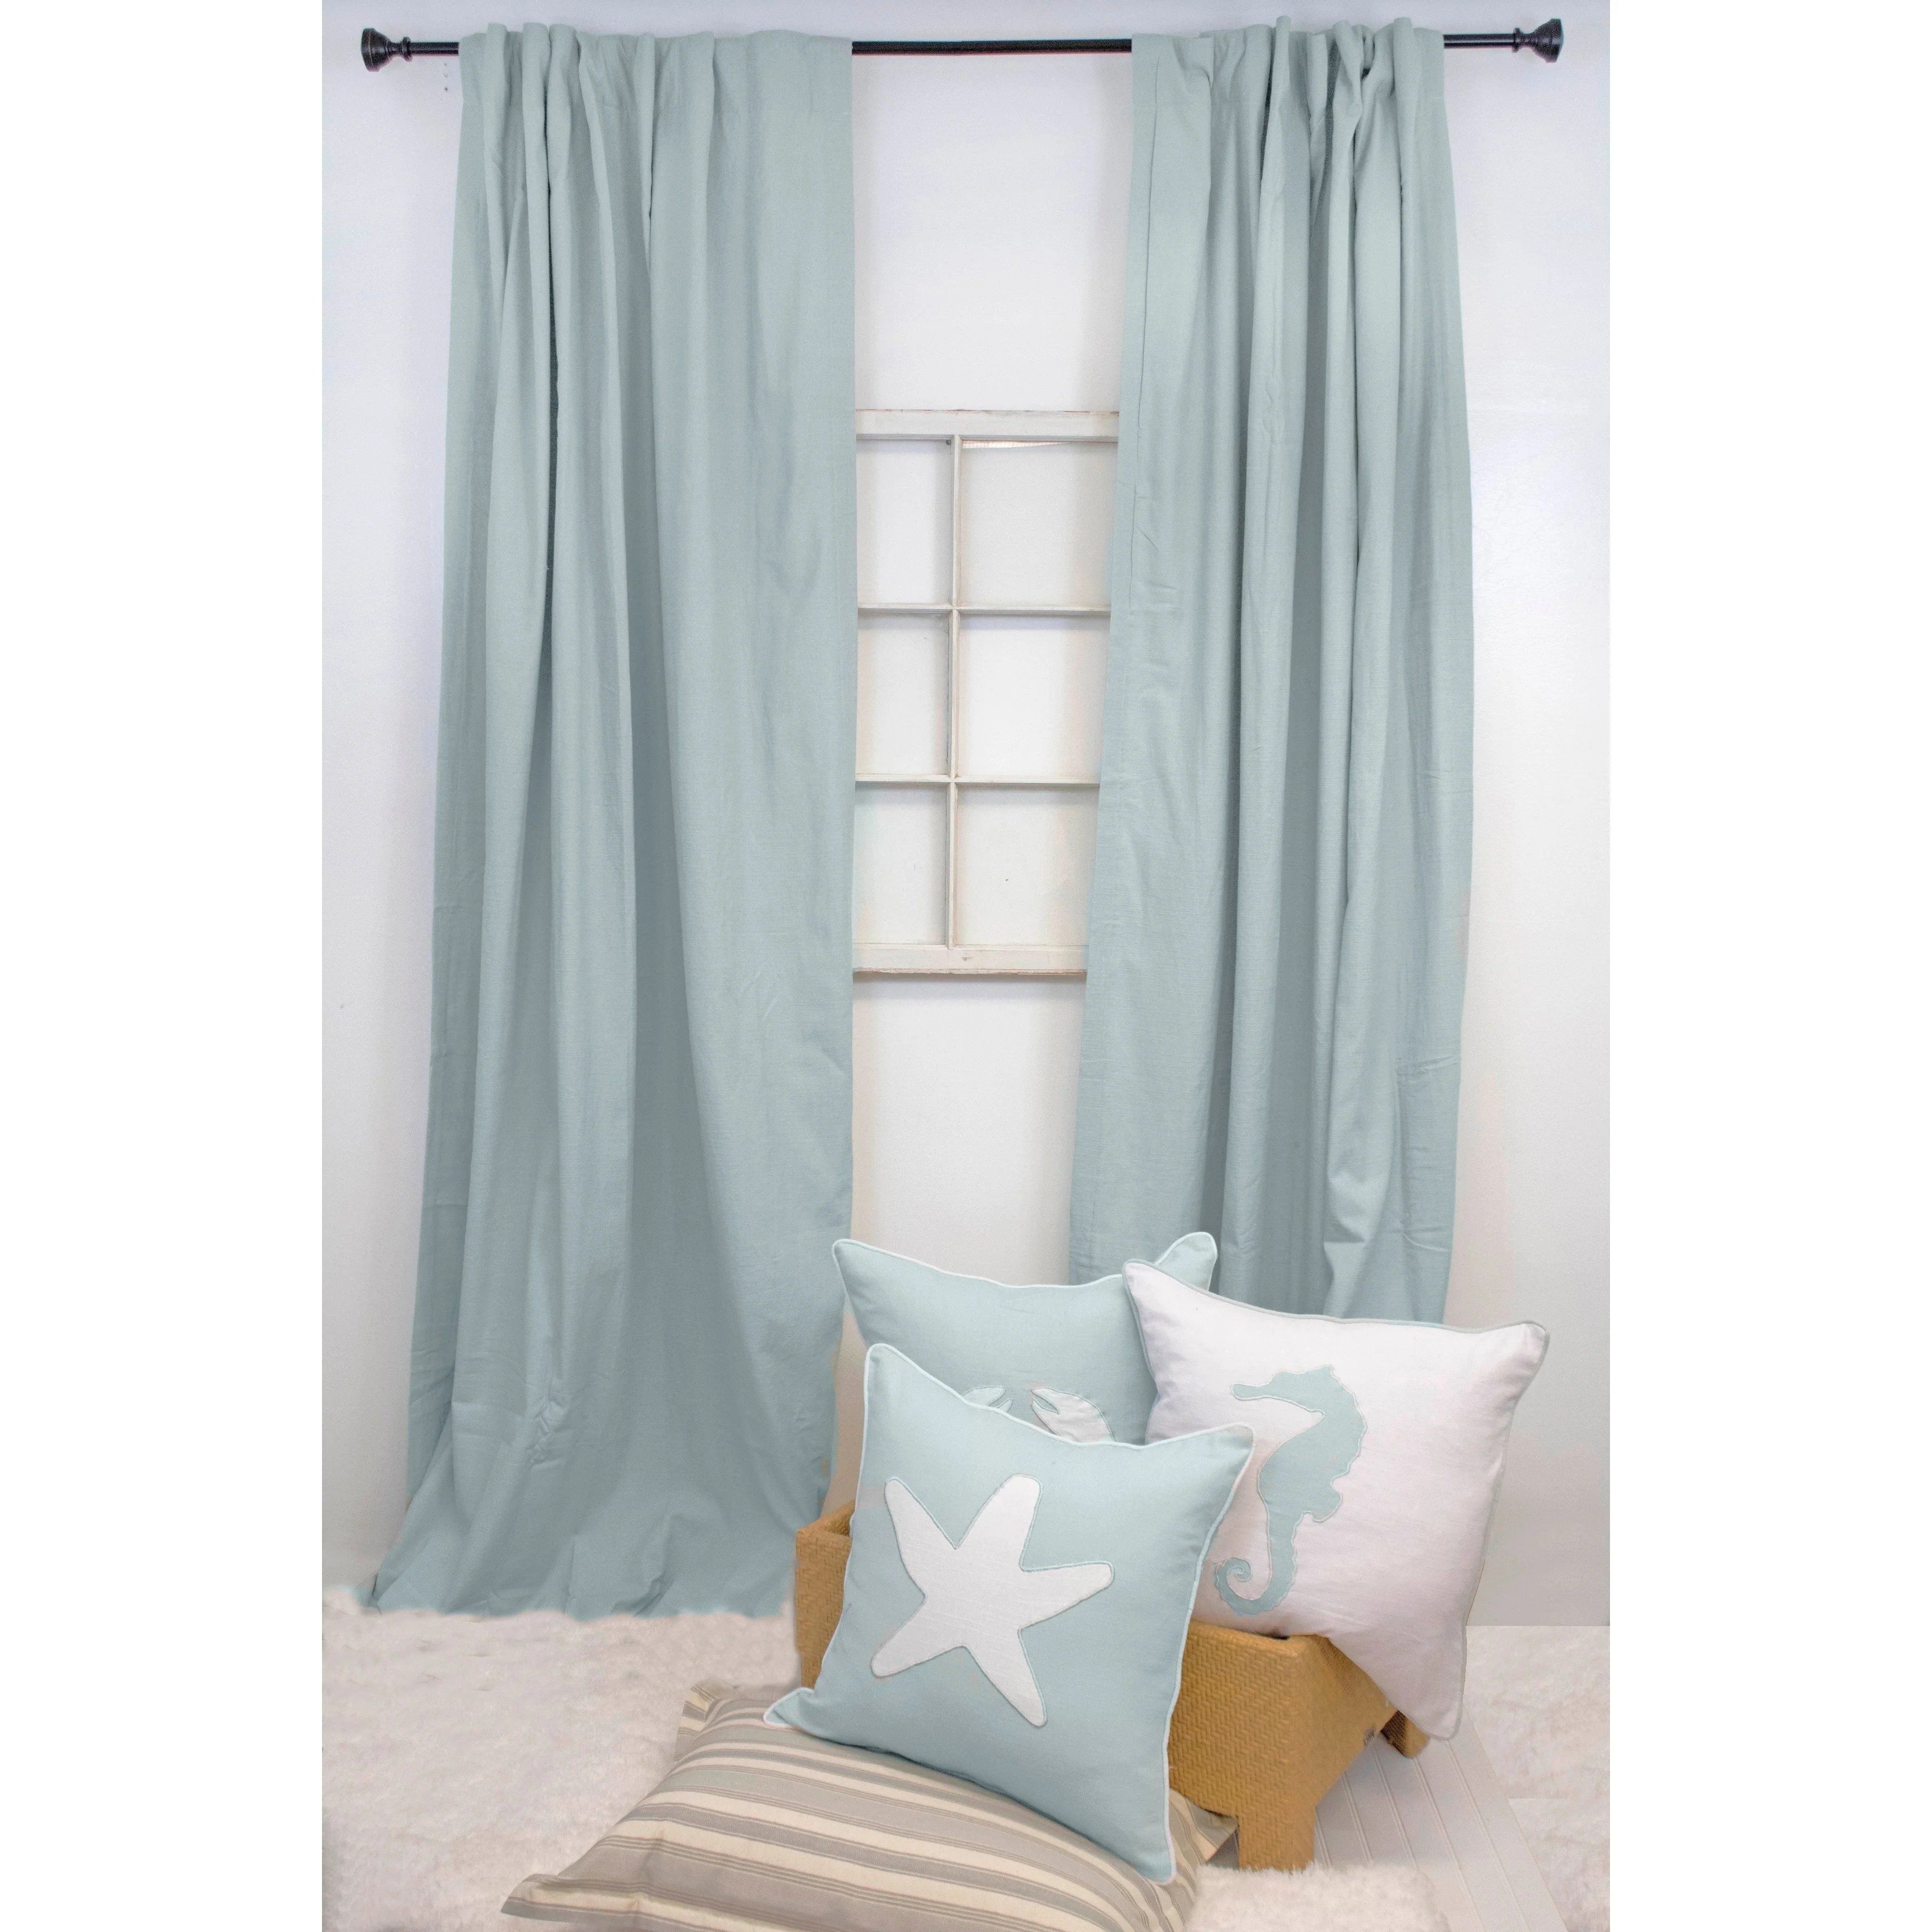 Cotton Curtain Panels American Colors Brand Heritage Spa Blue Cotton Solid Curtain Panel Pair